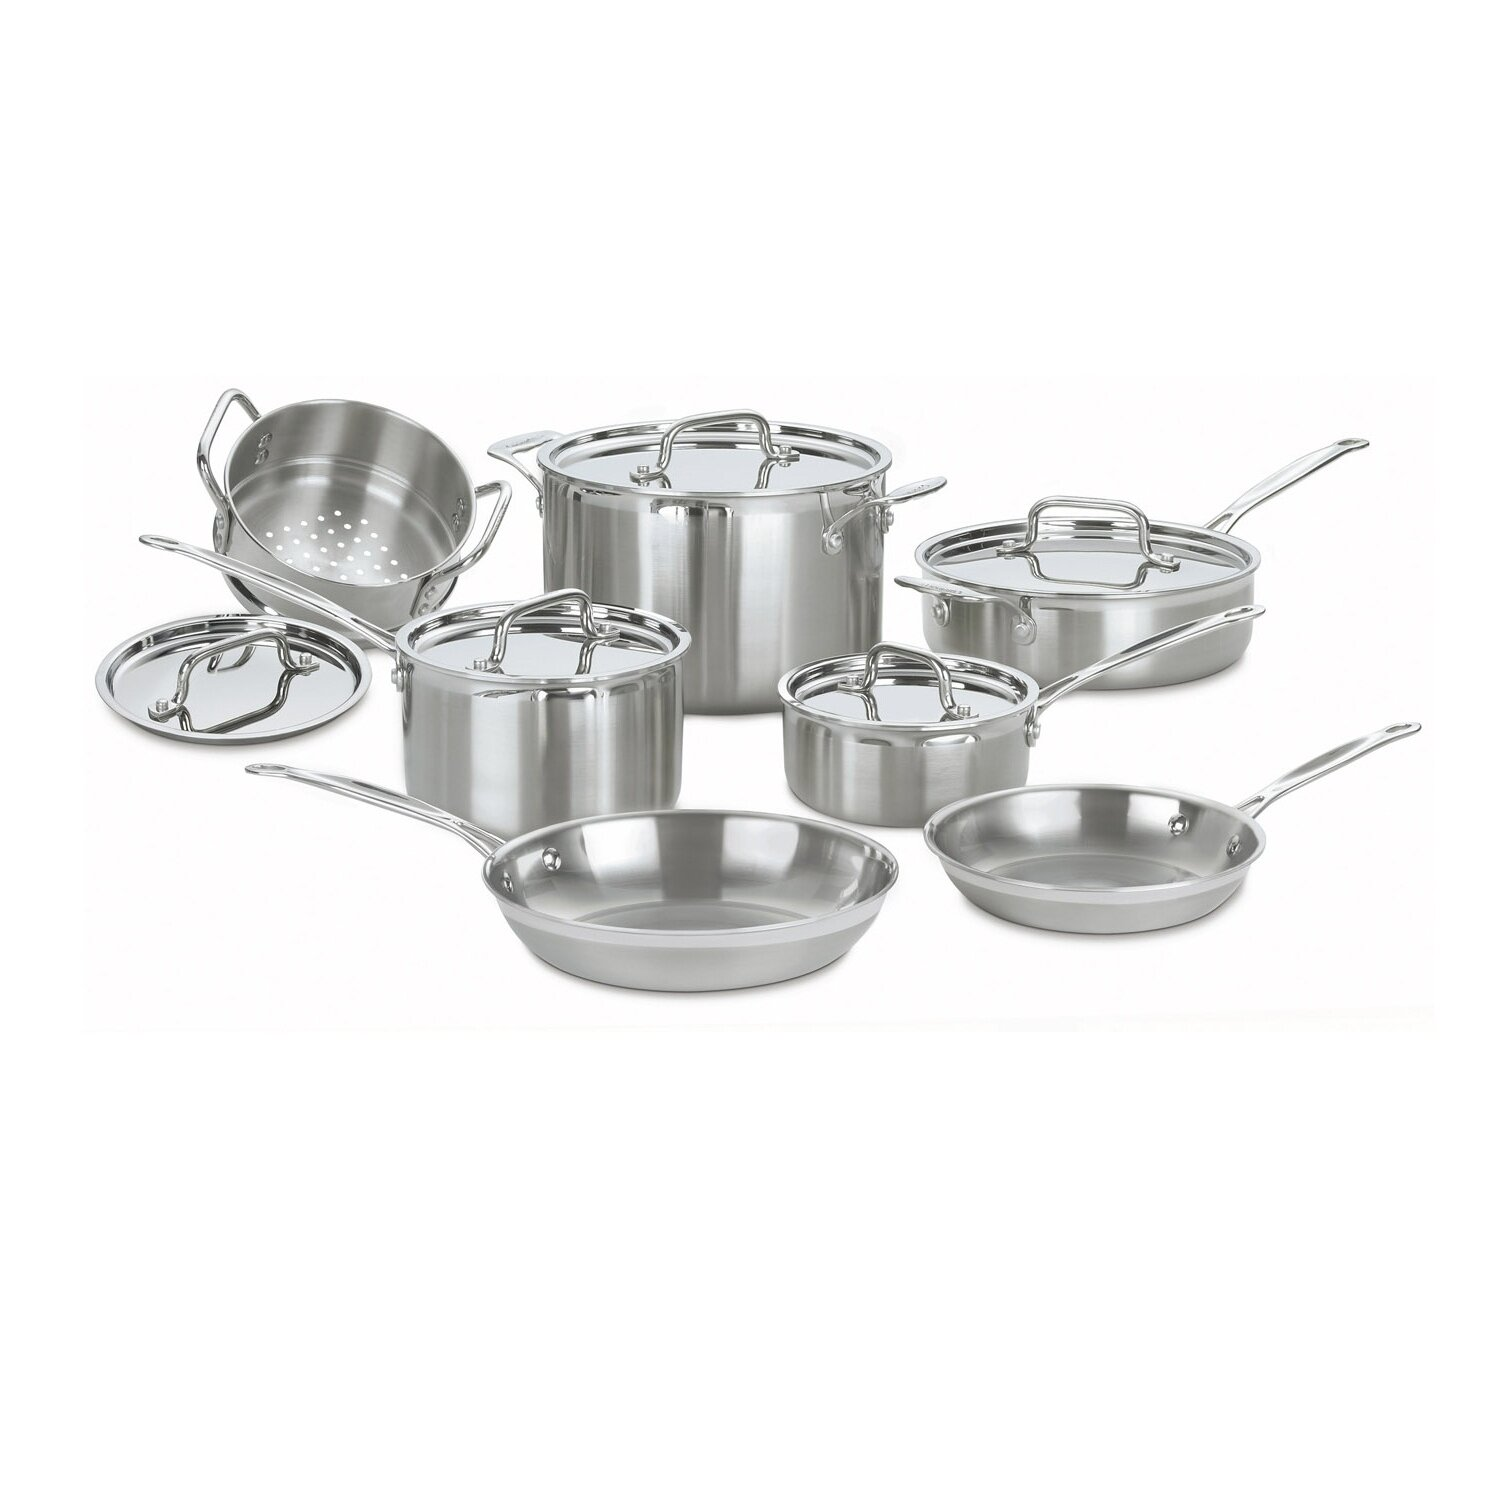 Multiclad Pro Stainless Steel 12 Piece Cookware Set